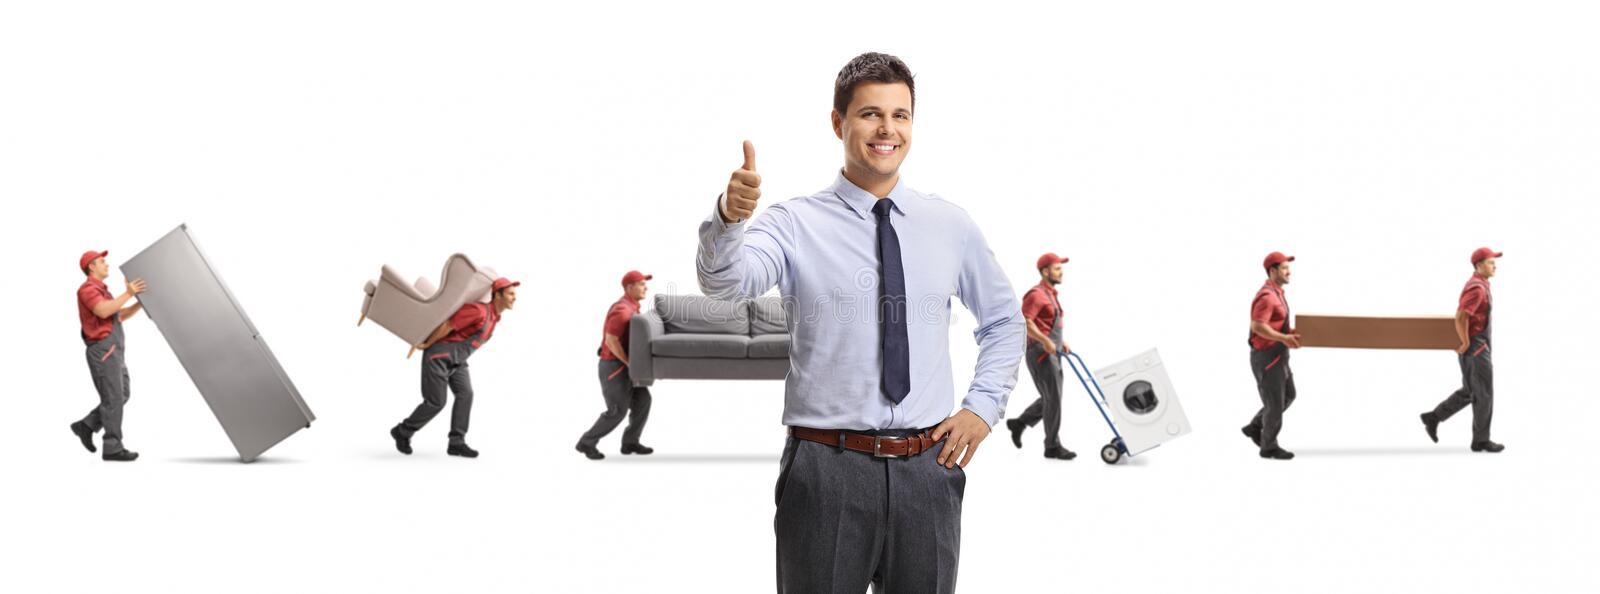 Young professional man showing thumbs up and movers carrying furniture stock photo